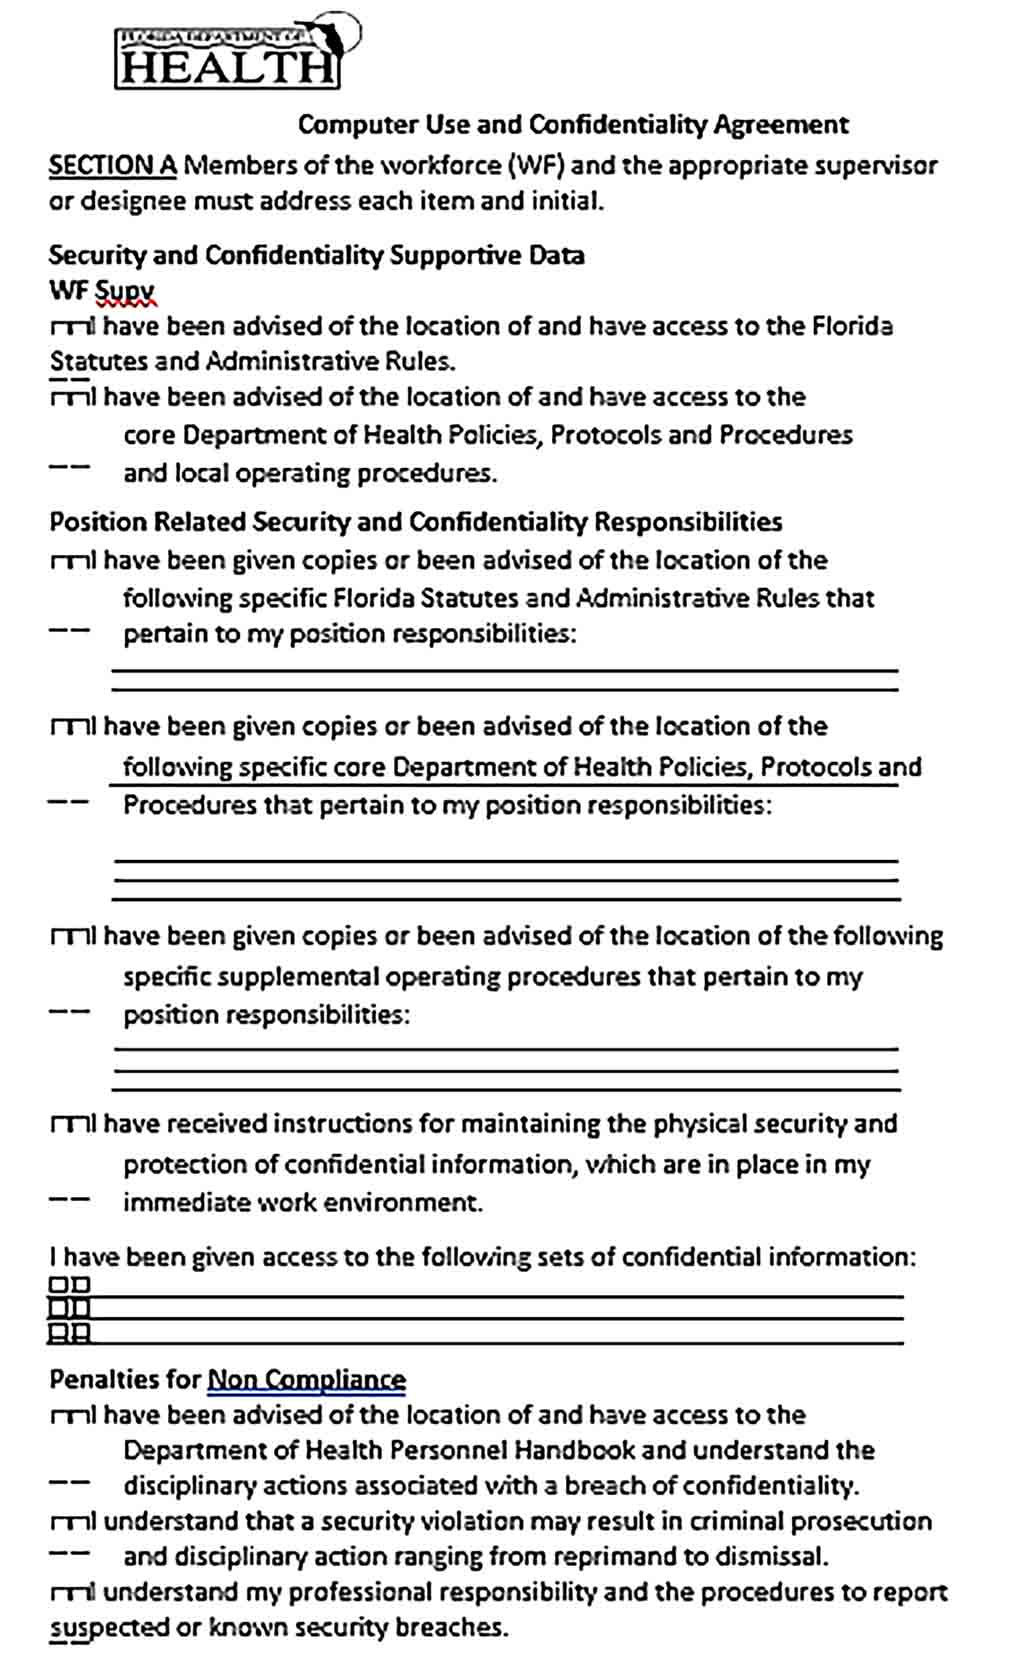 Sample Computer Use and Confidentiality Agreement